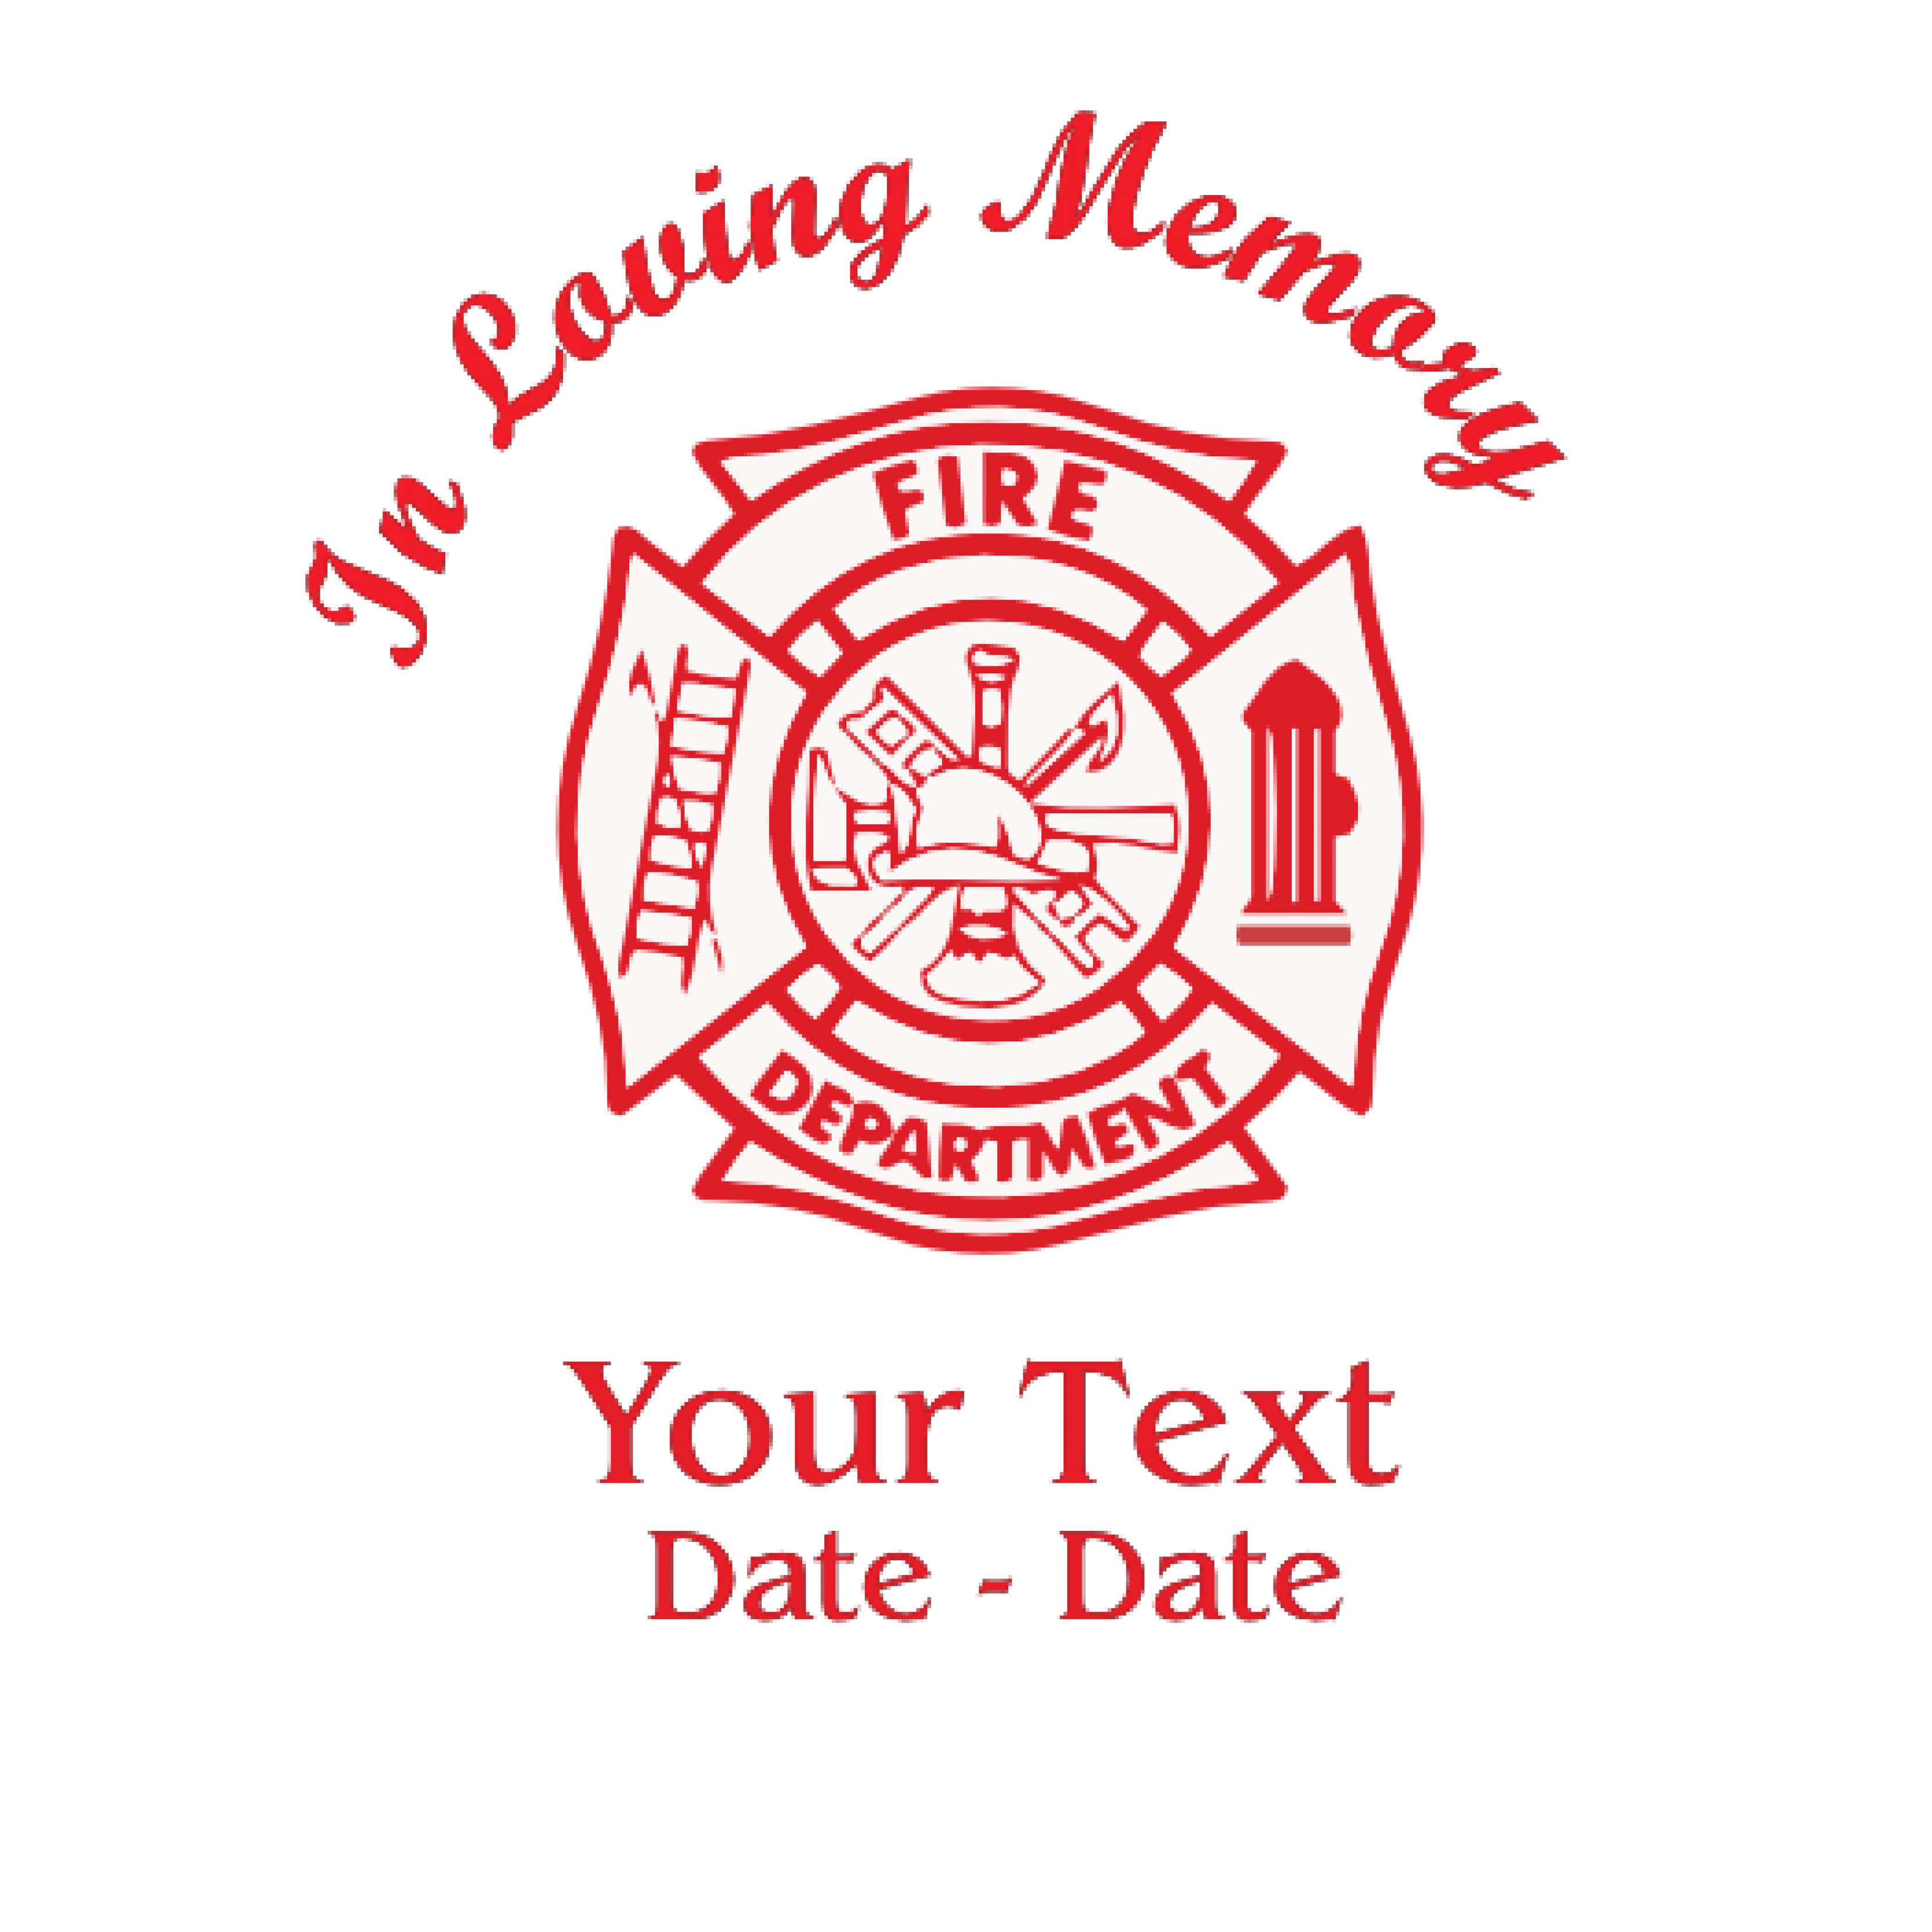 In Loving Memory Firefighter Decal